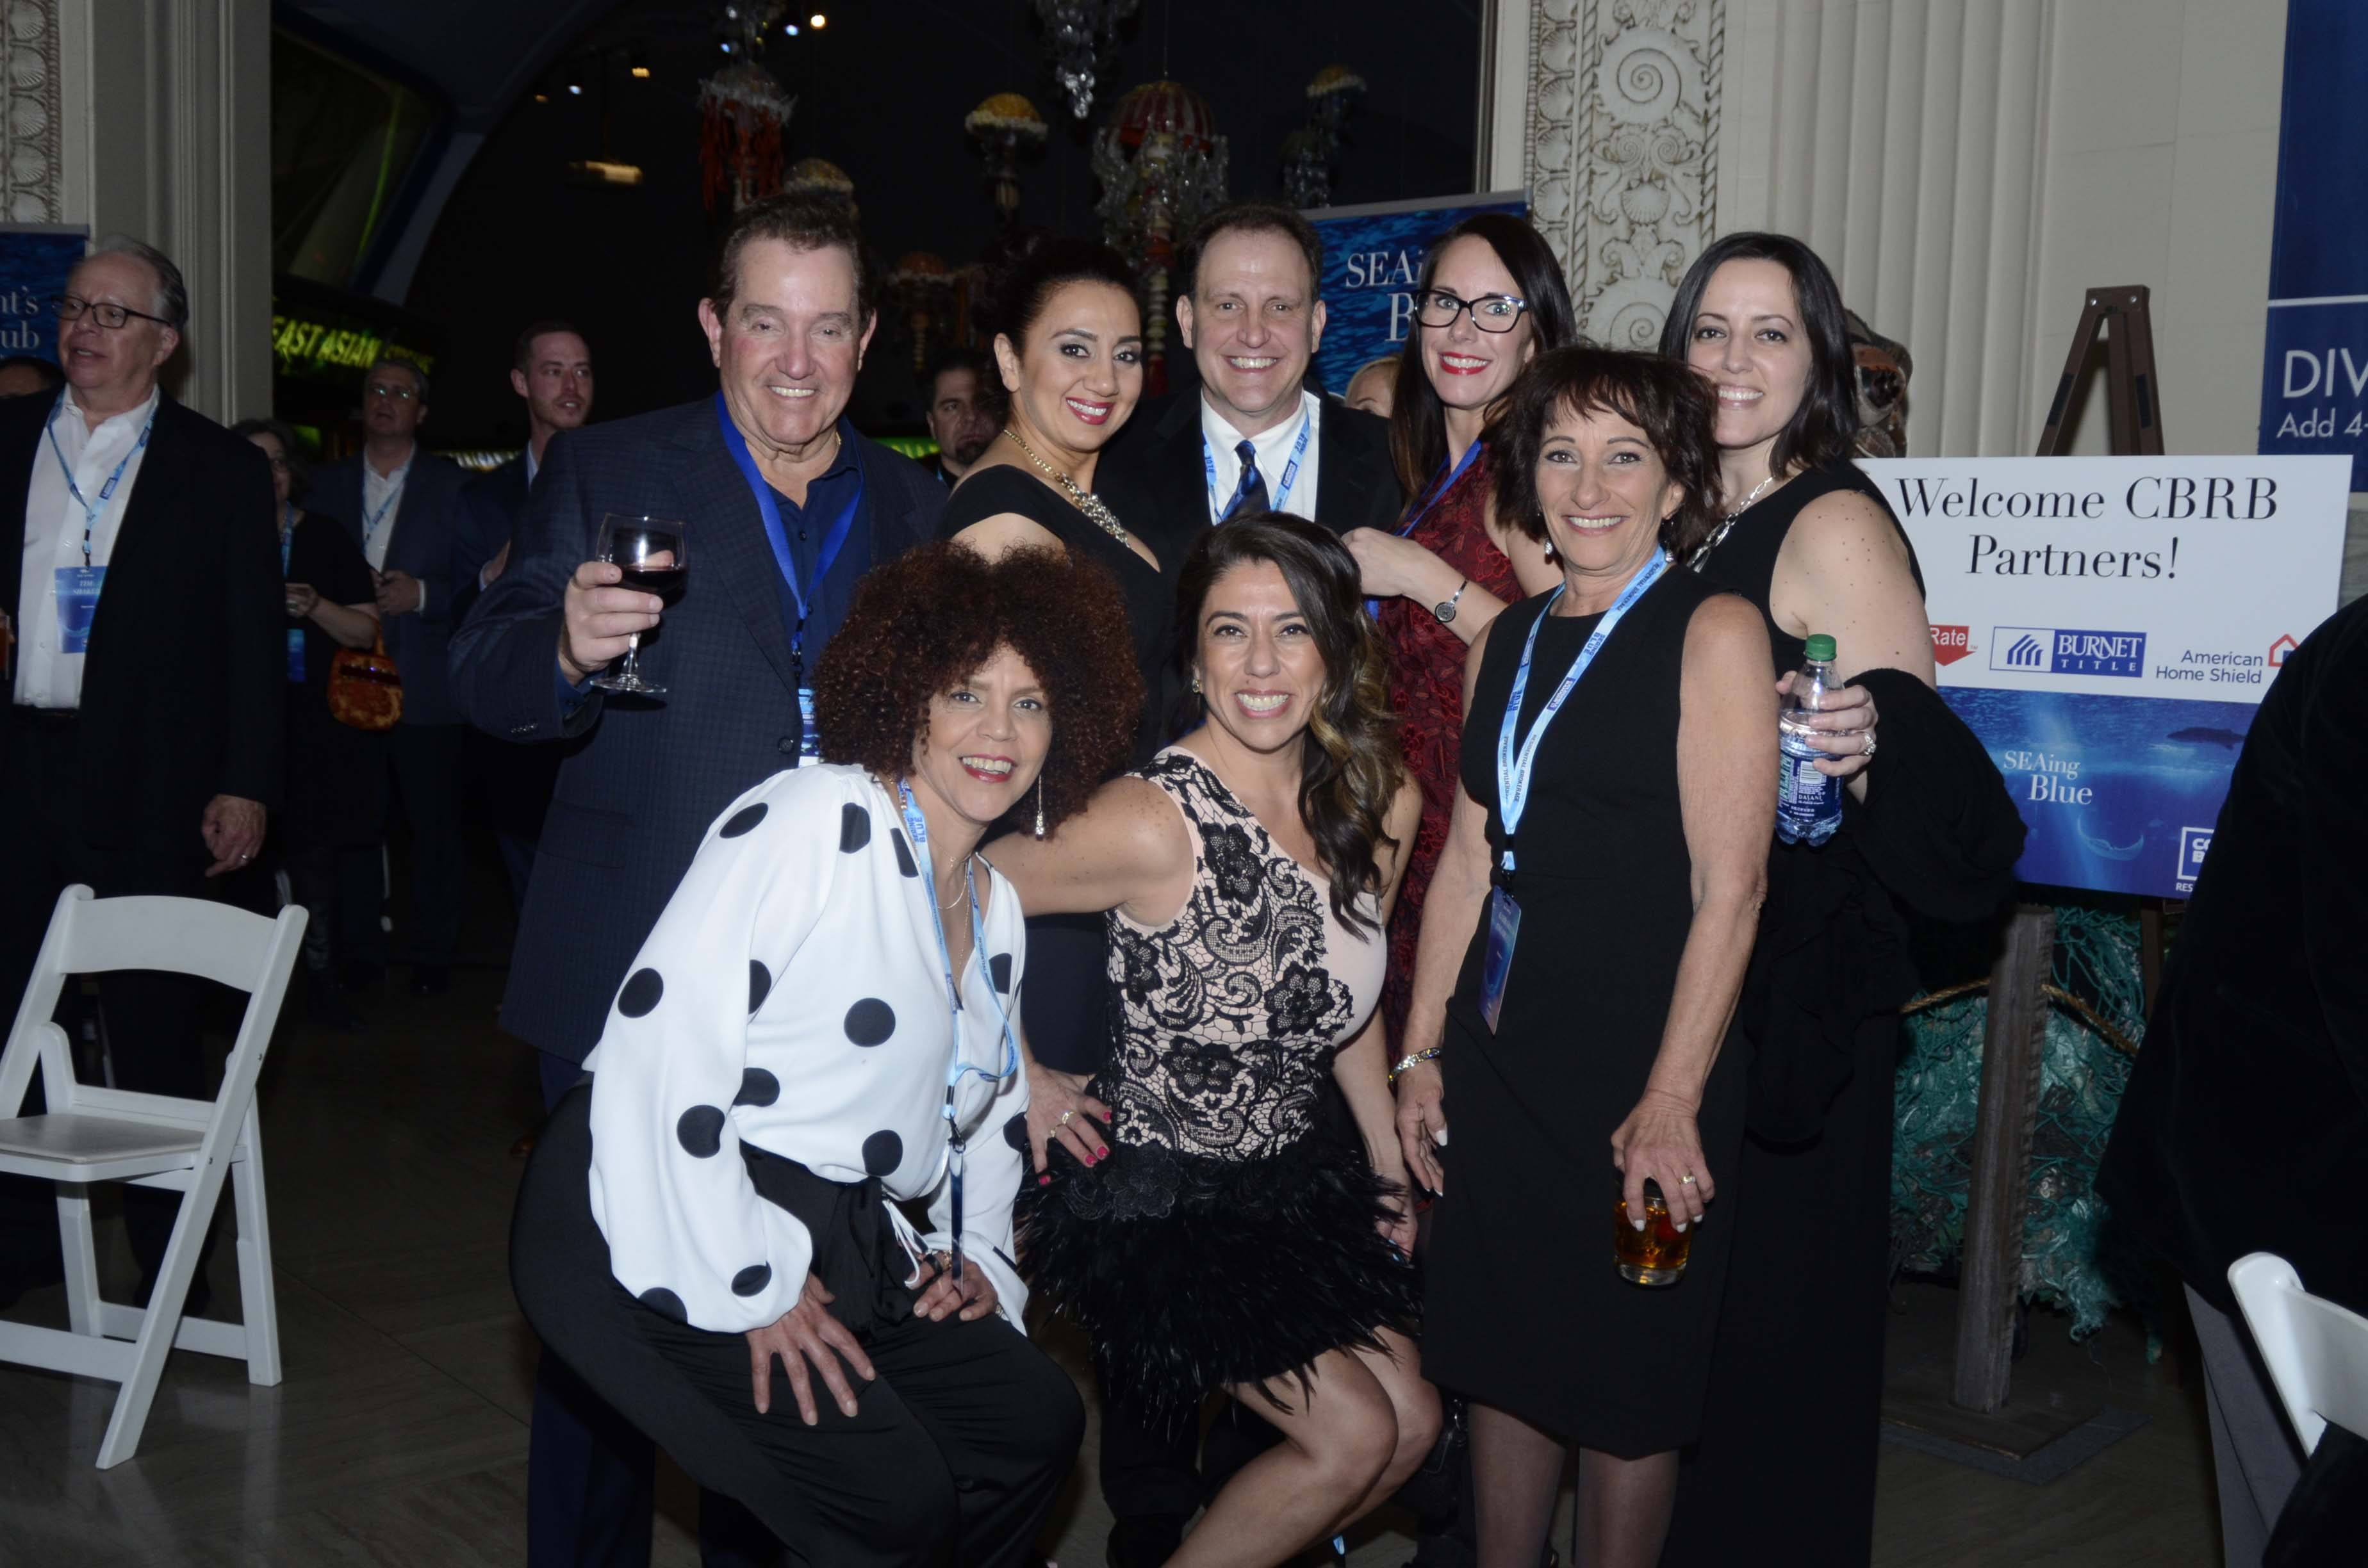 barry-paoli-team-coldwell-banker-mcmullen-northwest-office.jpg